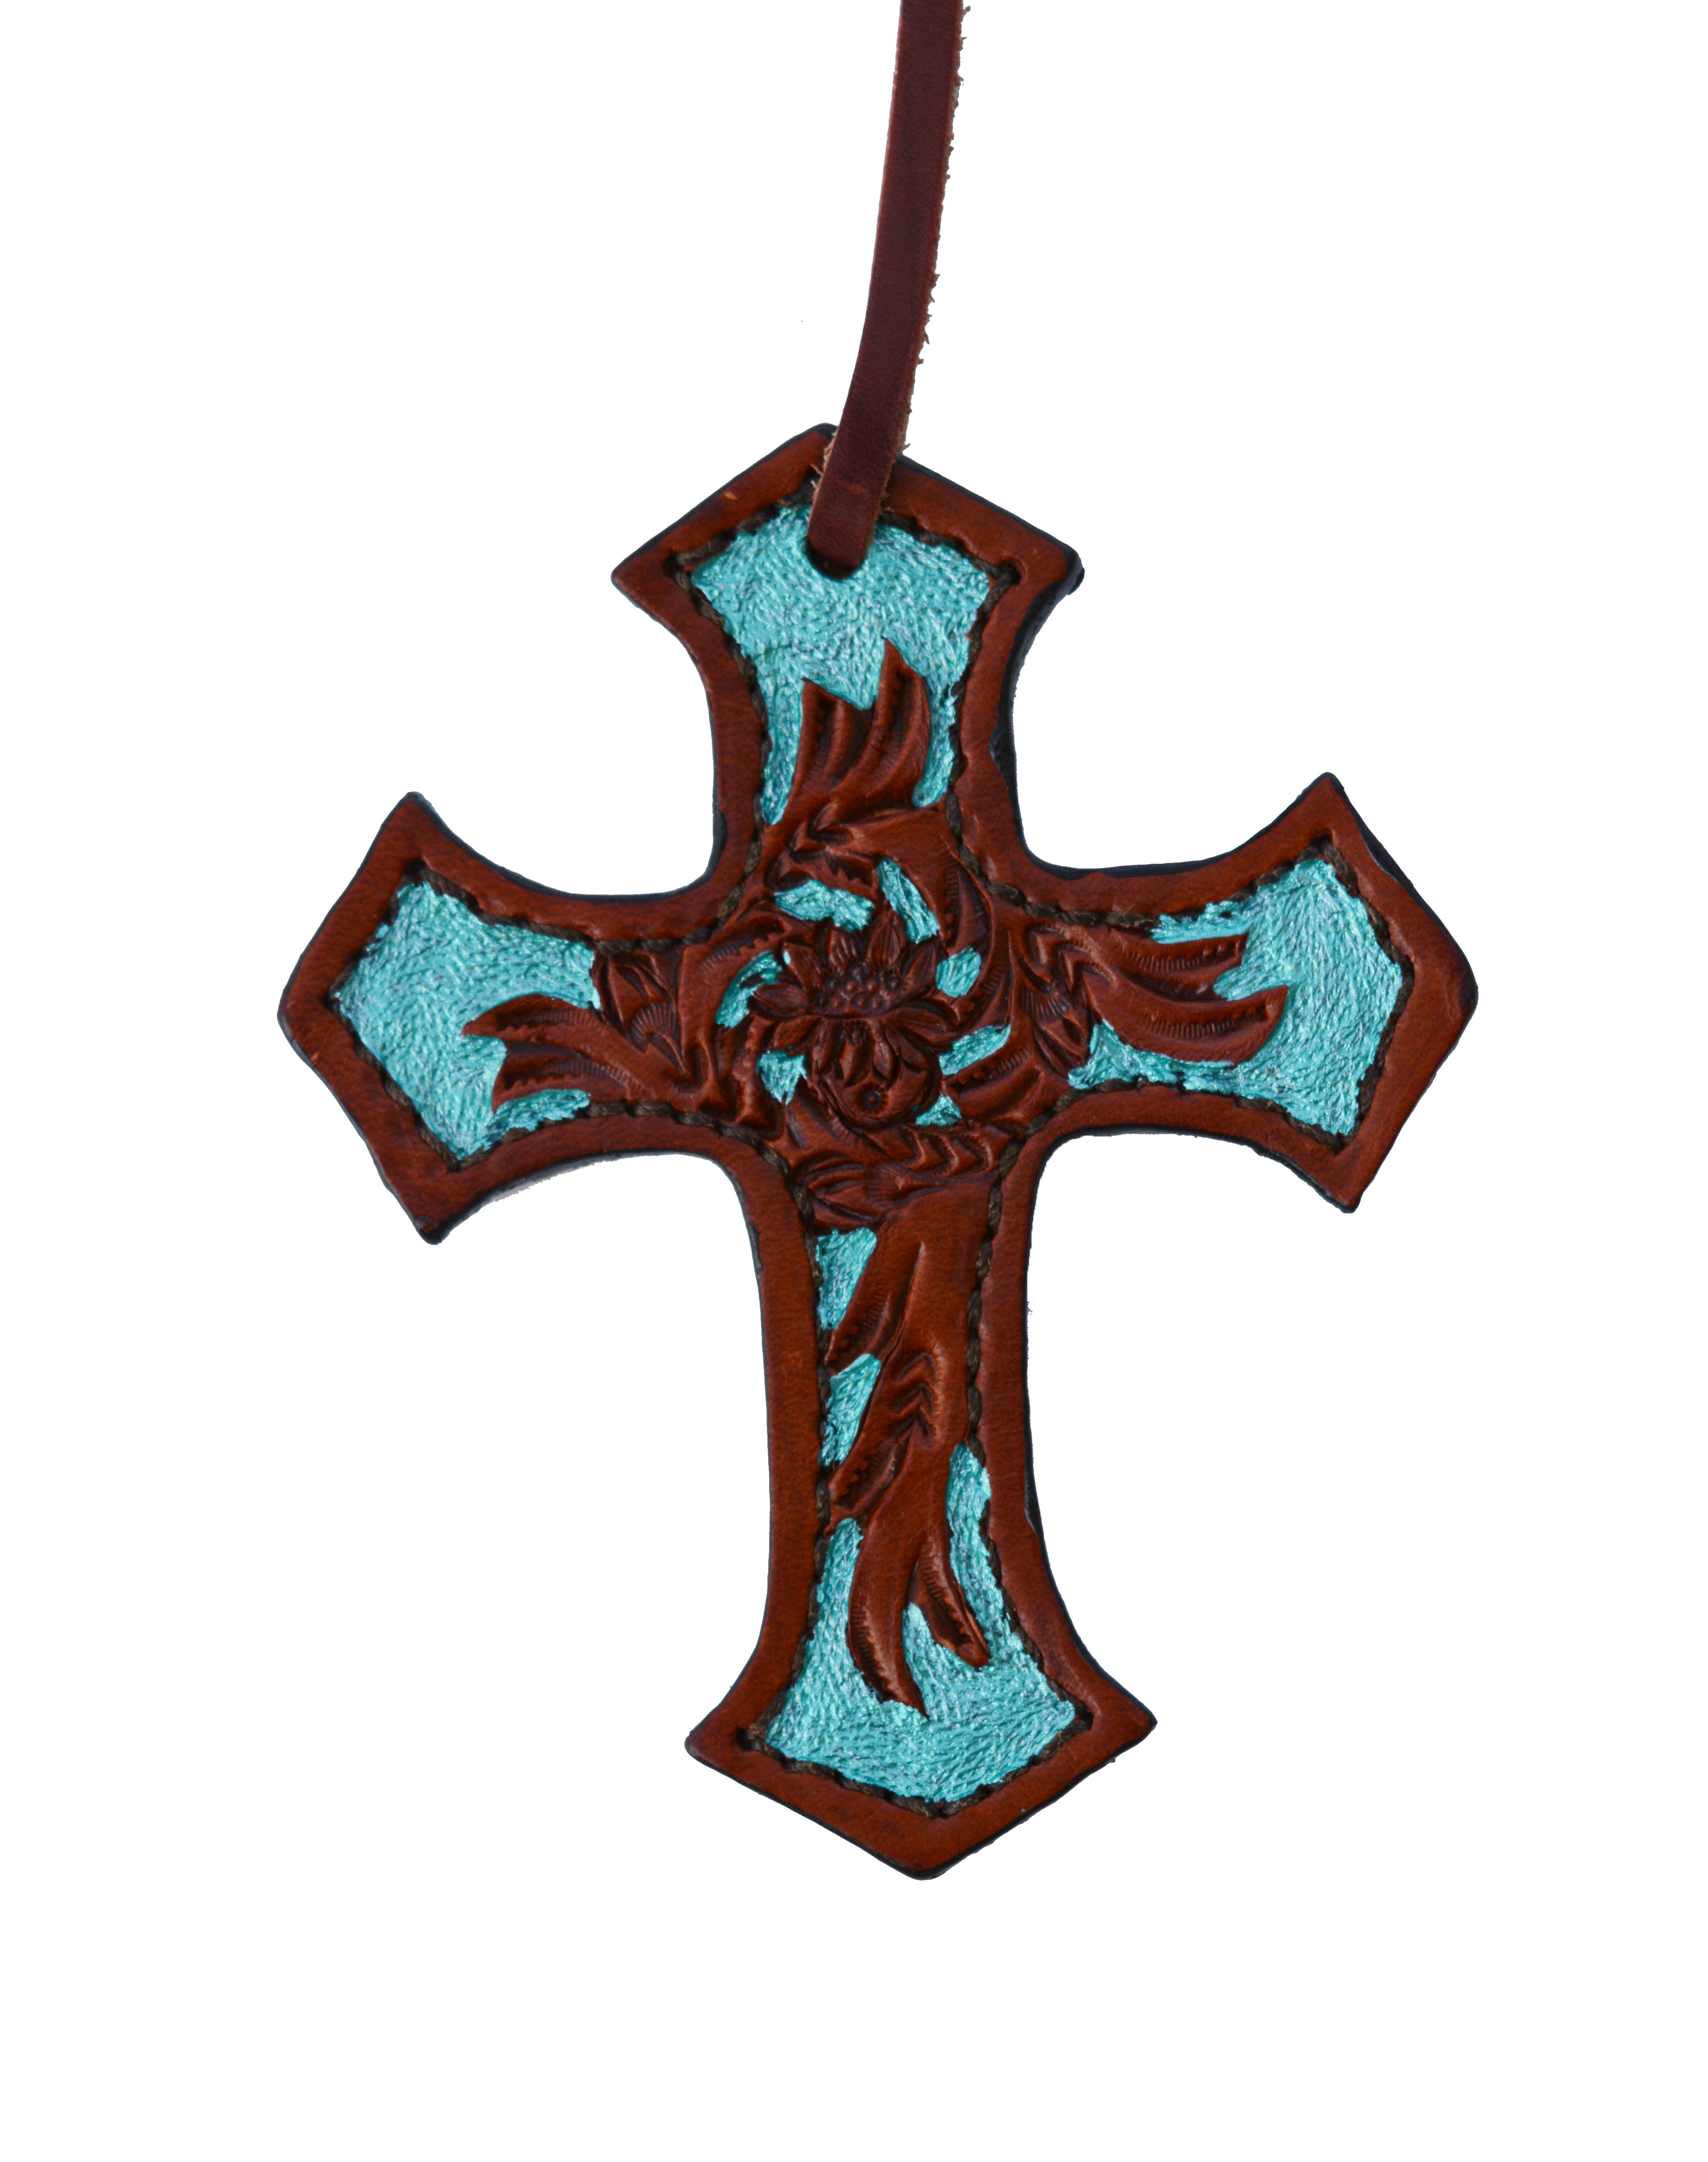 108-FT CROSS AA TOOLED w TURQUOISE PAINT